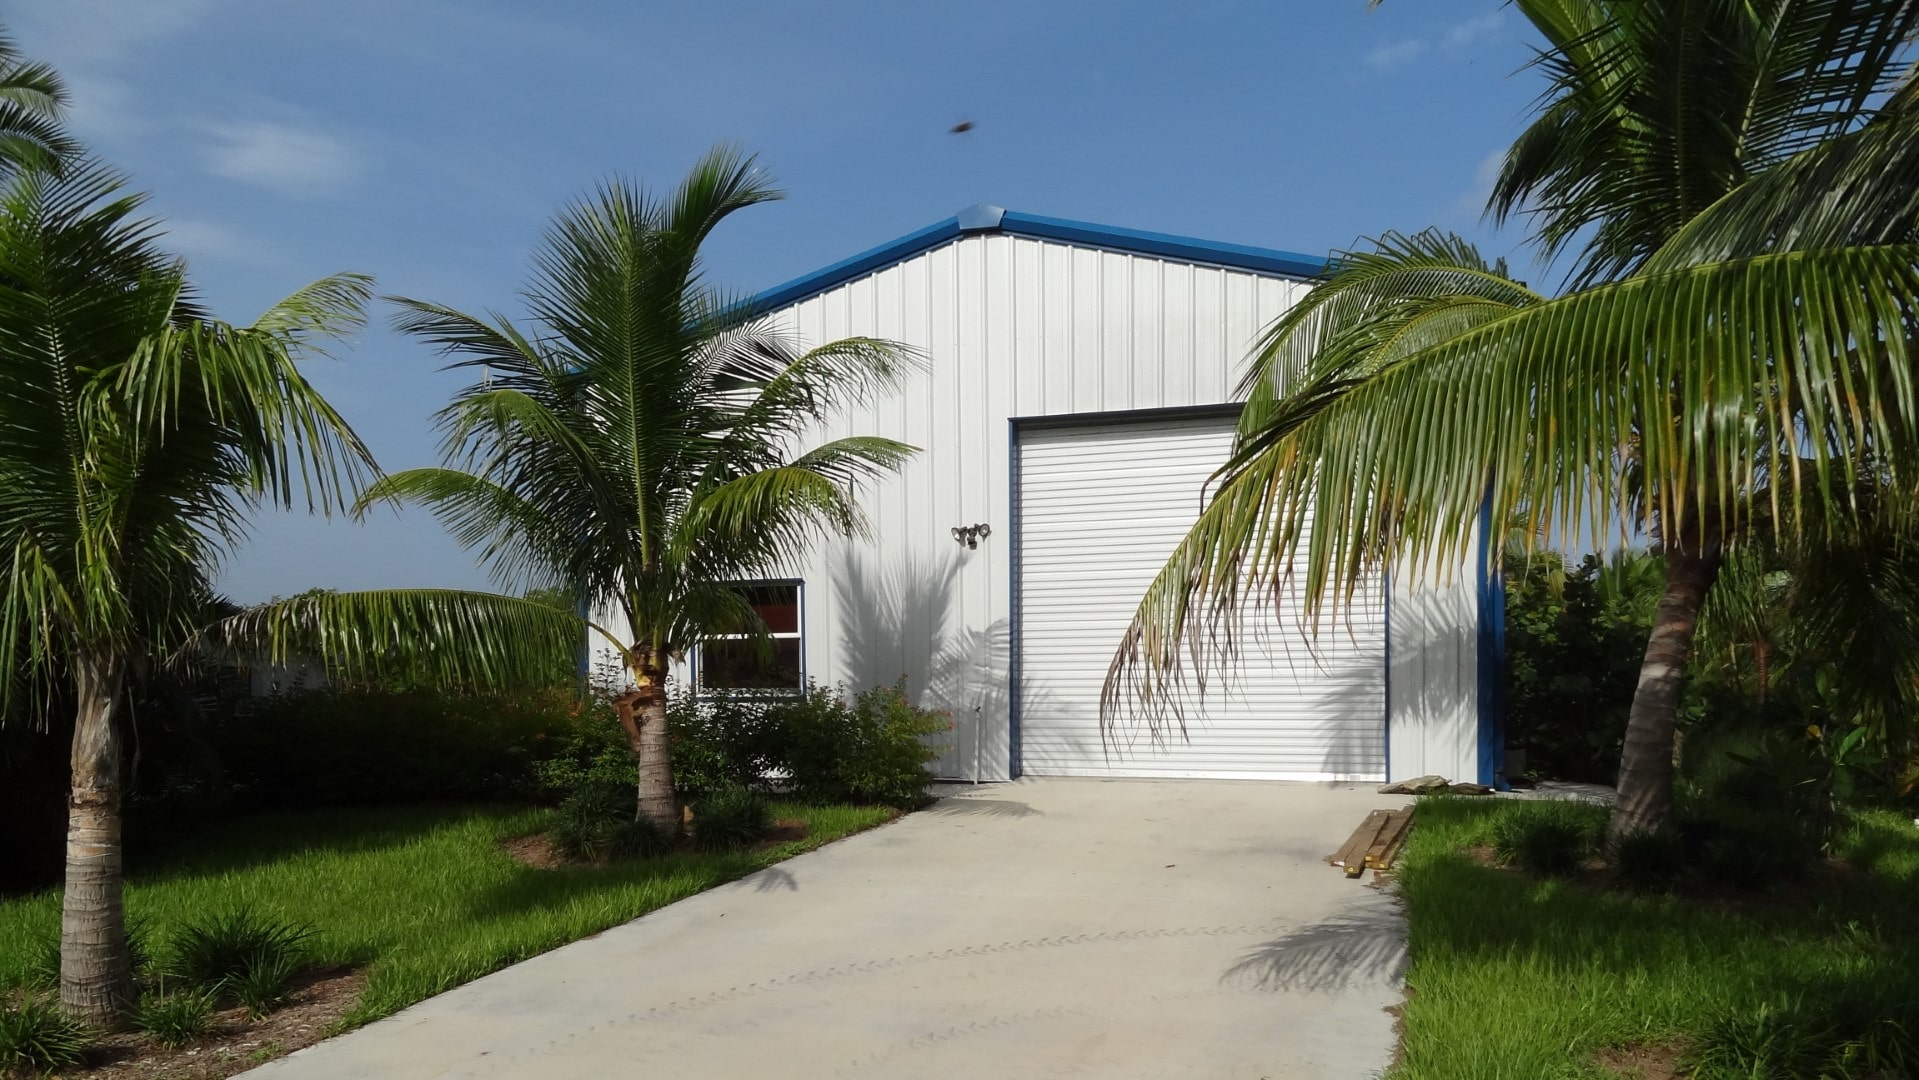 White metal garage with blue trim, rollup door and window.